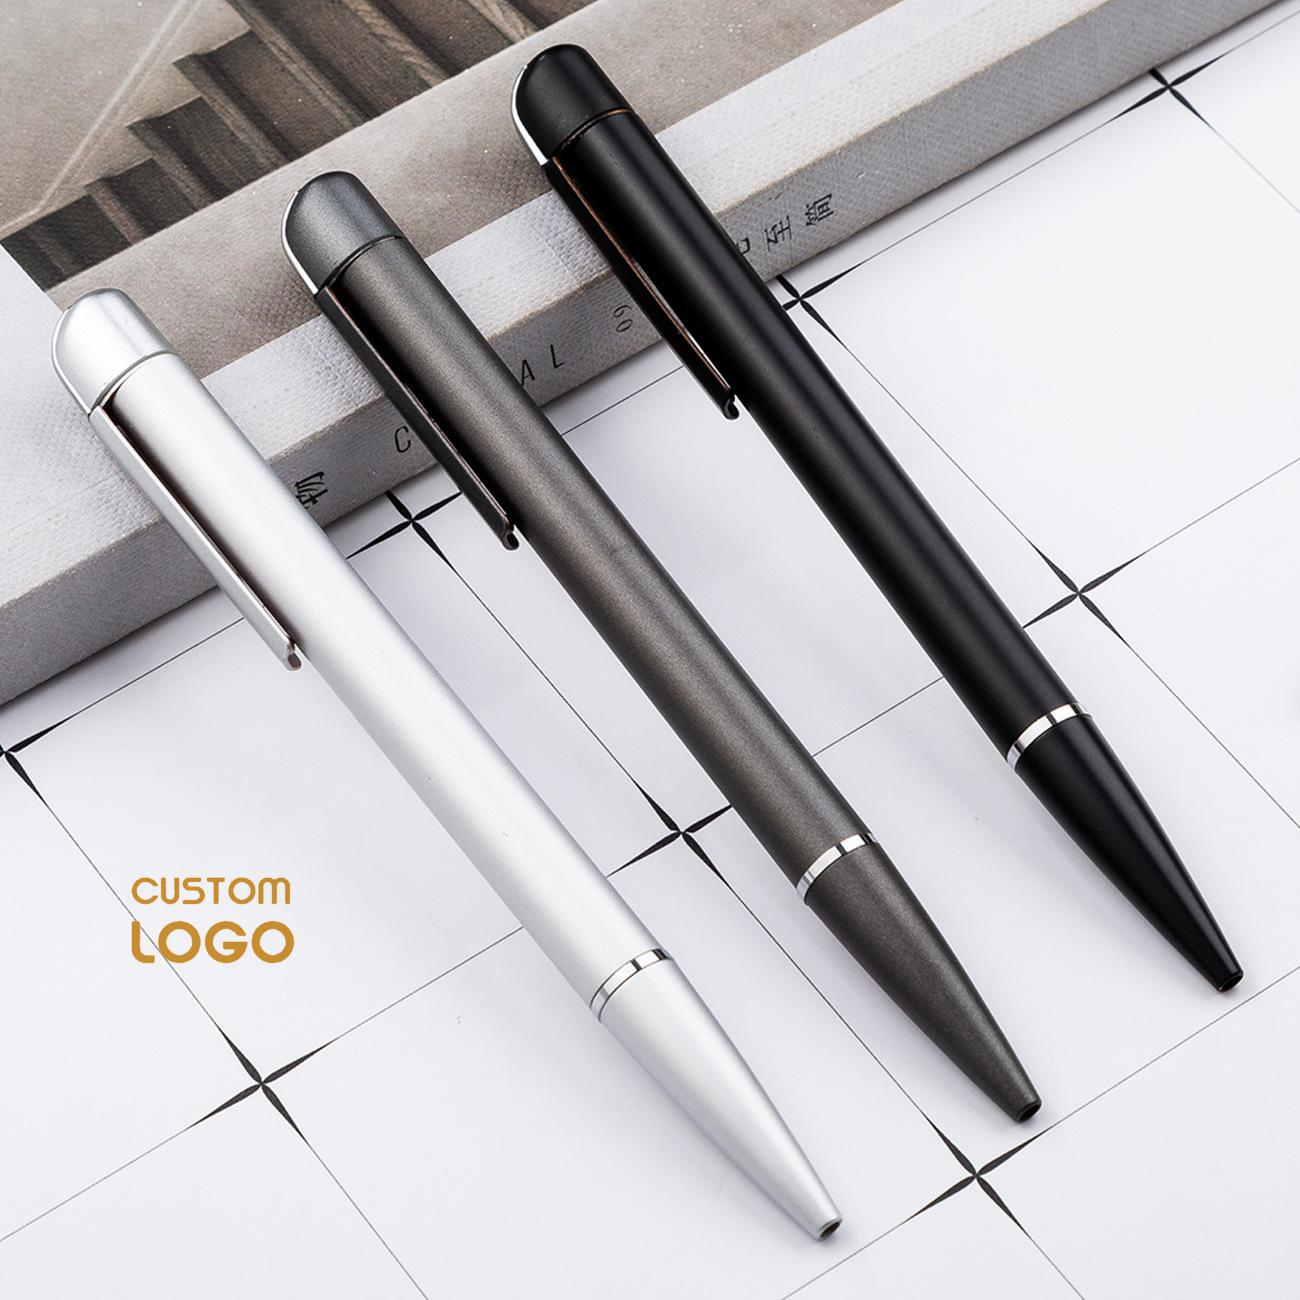 Customized Pens Business Logo 1.0mm Black Ink Metal Ballpoint Pen Personalized Gift Pen Engrave Logo Name School Office Supplies image